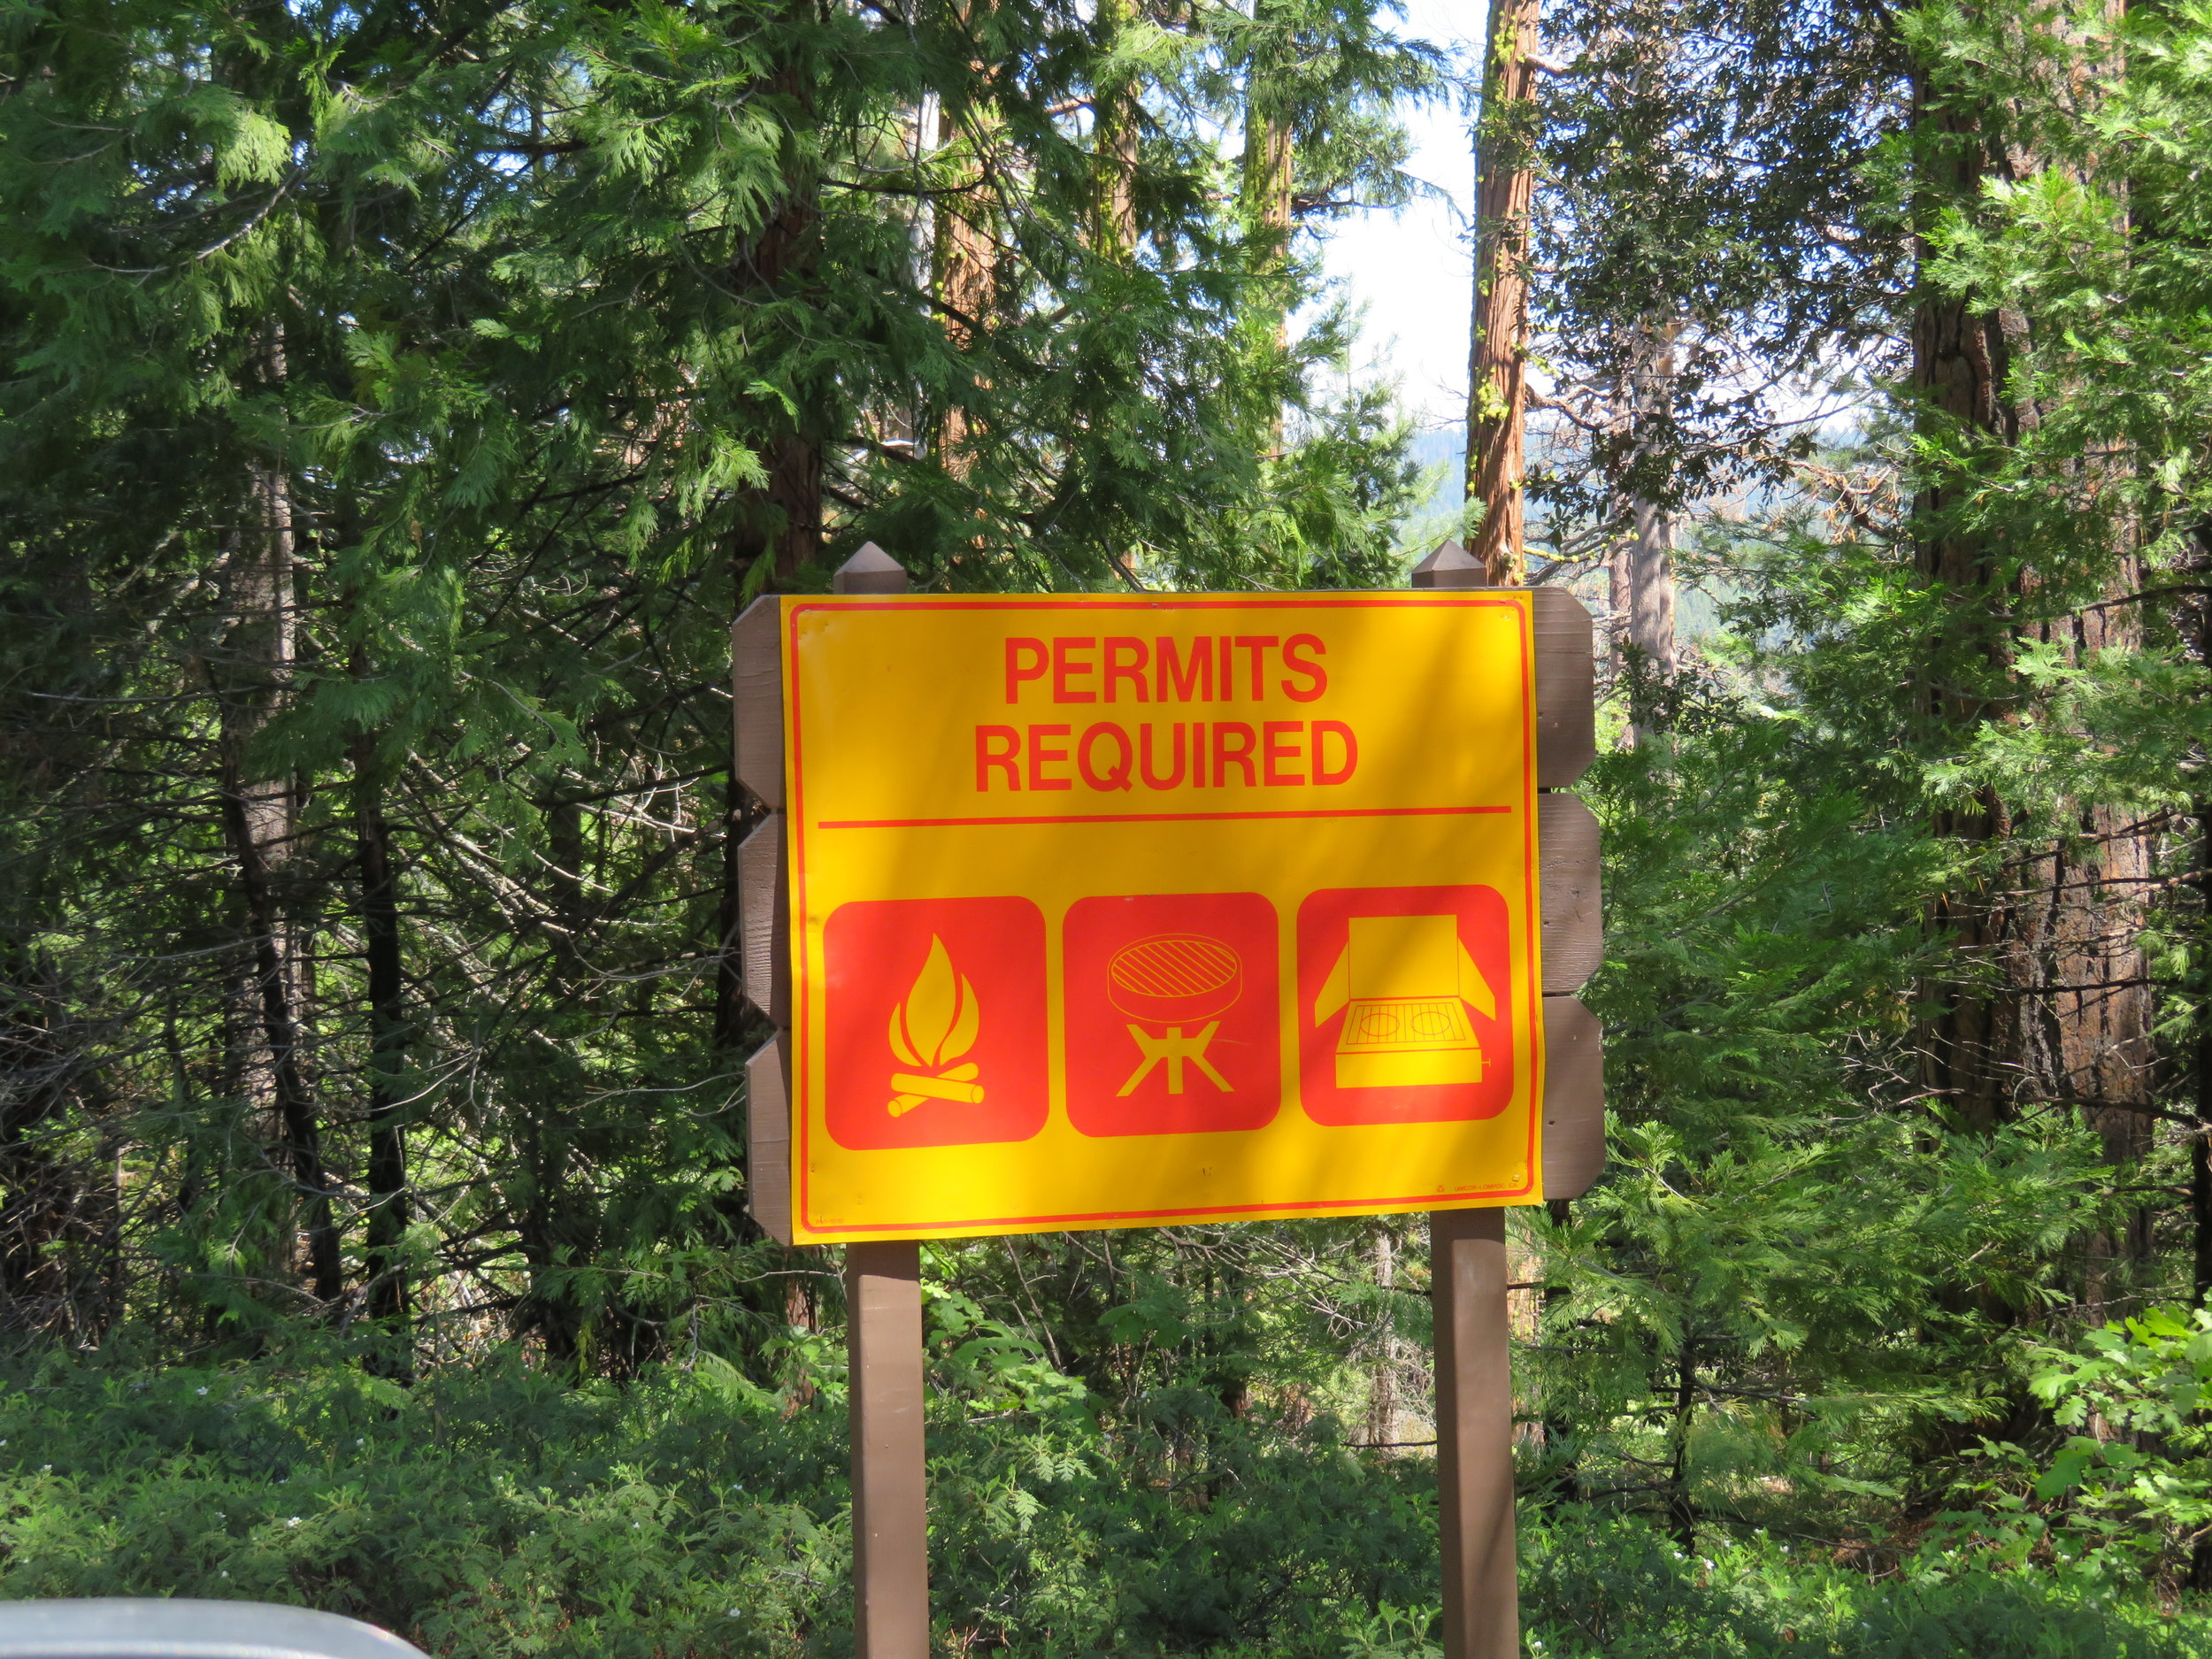 A fire permit is required in many places